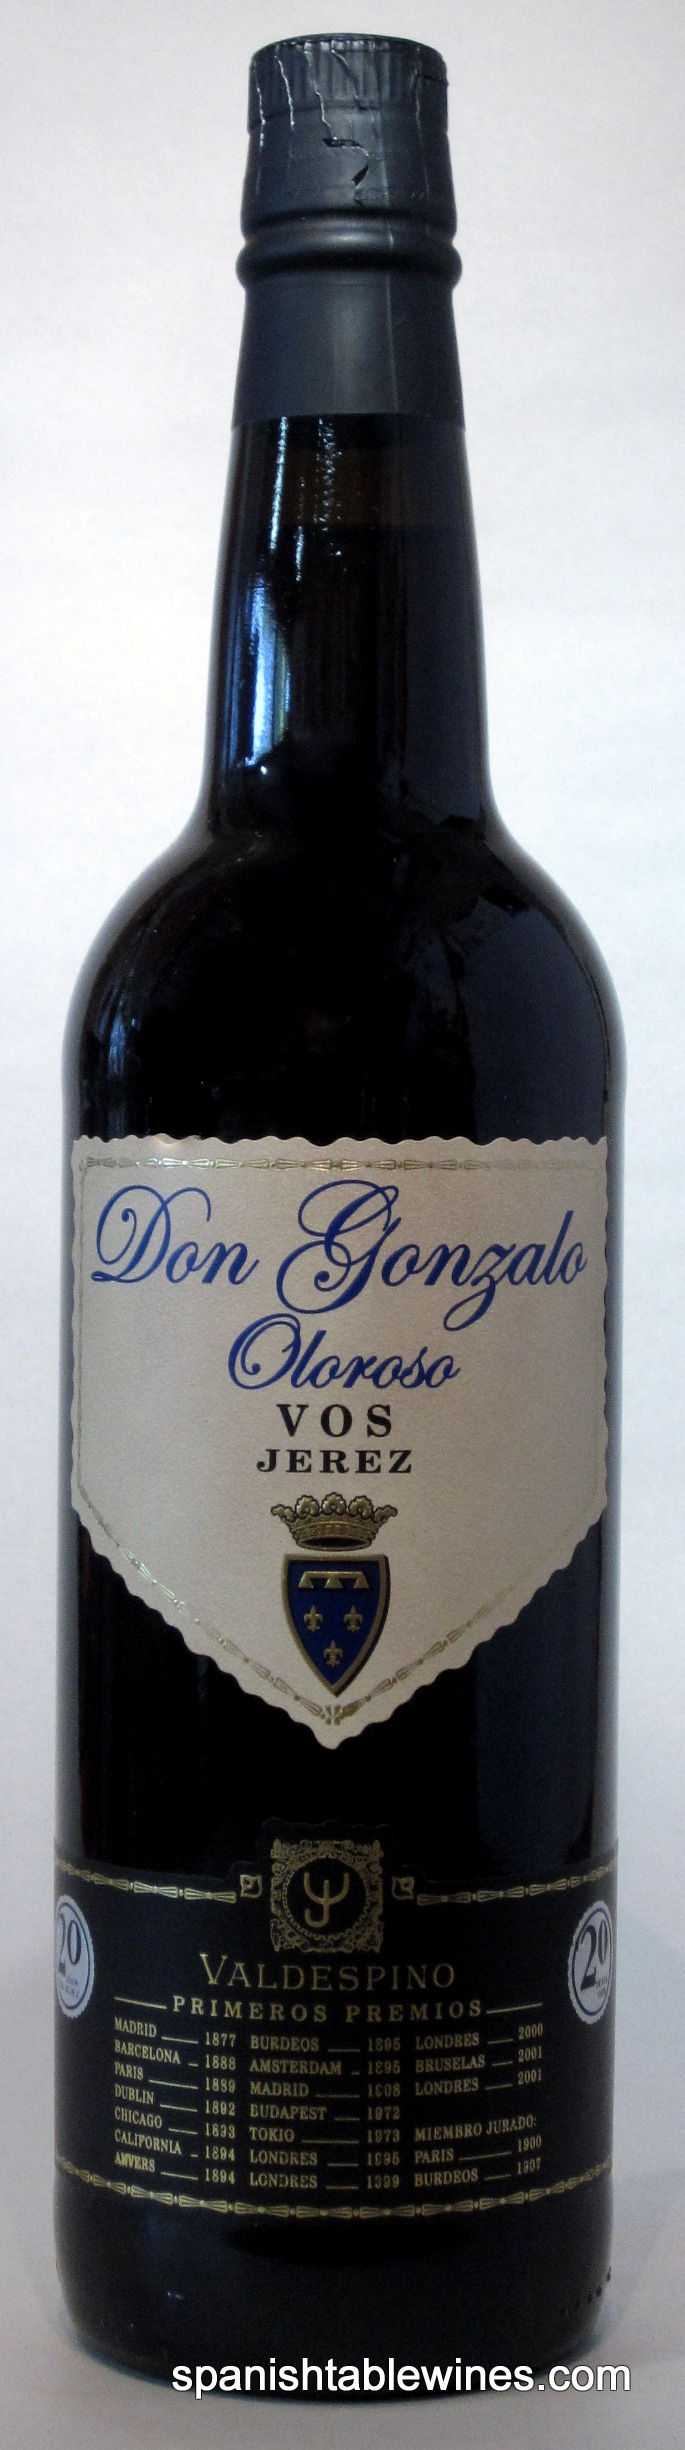 Valdespino Don Gonzalo Oloroso VOS 20 Years - Jerez